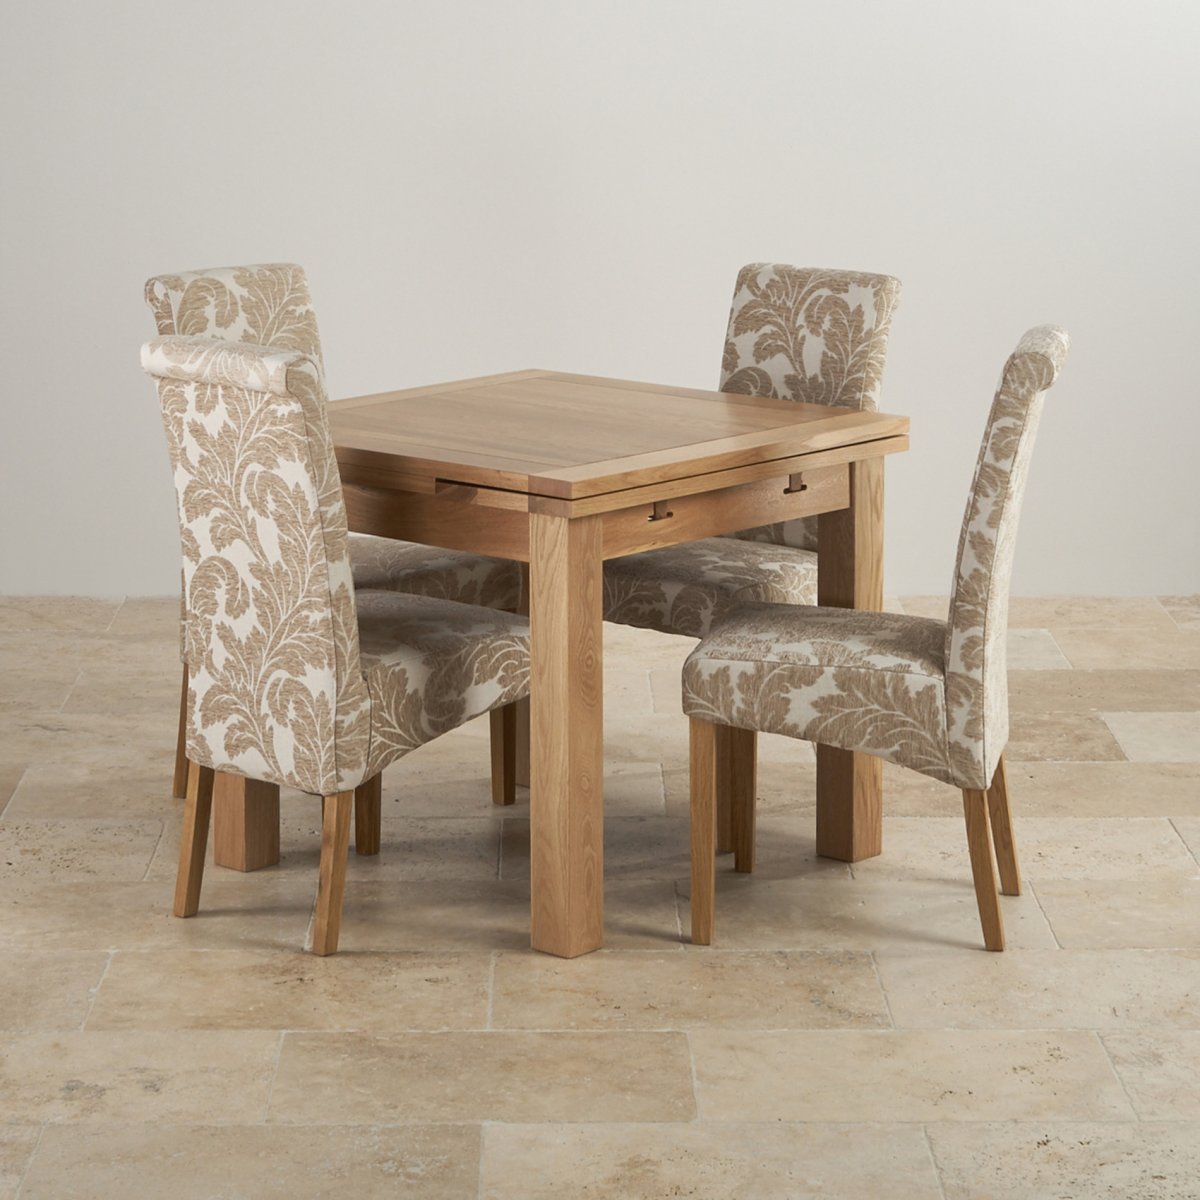 Solid Oak Dining Room Furniture ~ Dorset oak dining set ft table with beige chairs